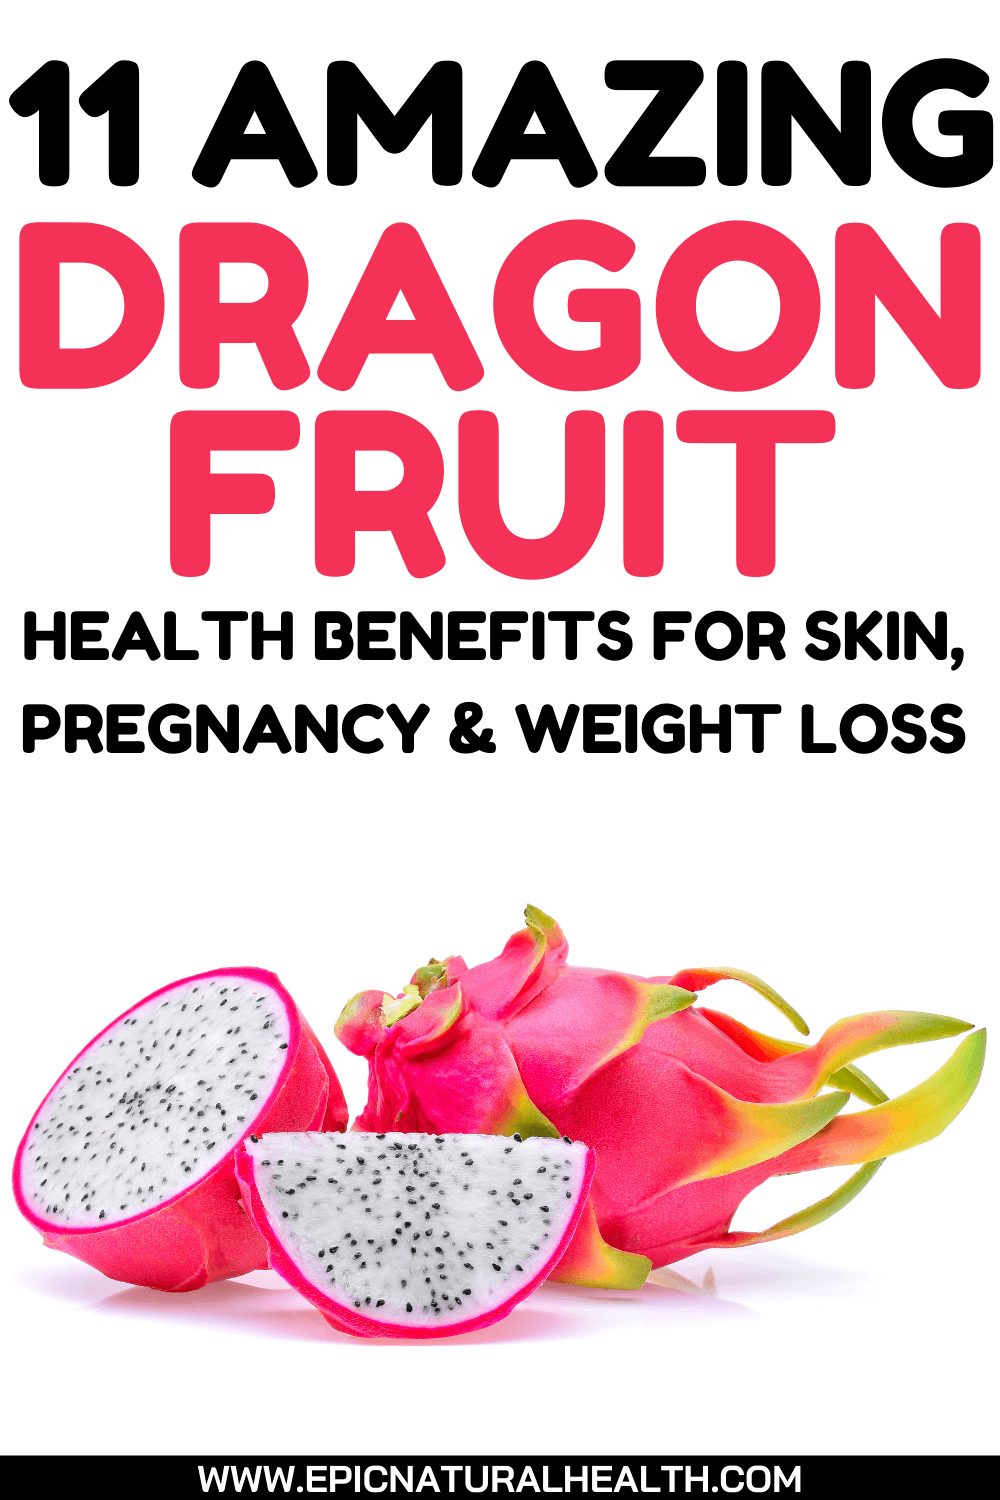 11 Amazing Dragon Fruit Health Benefits for Skin, Pregnancy, and weight loss